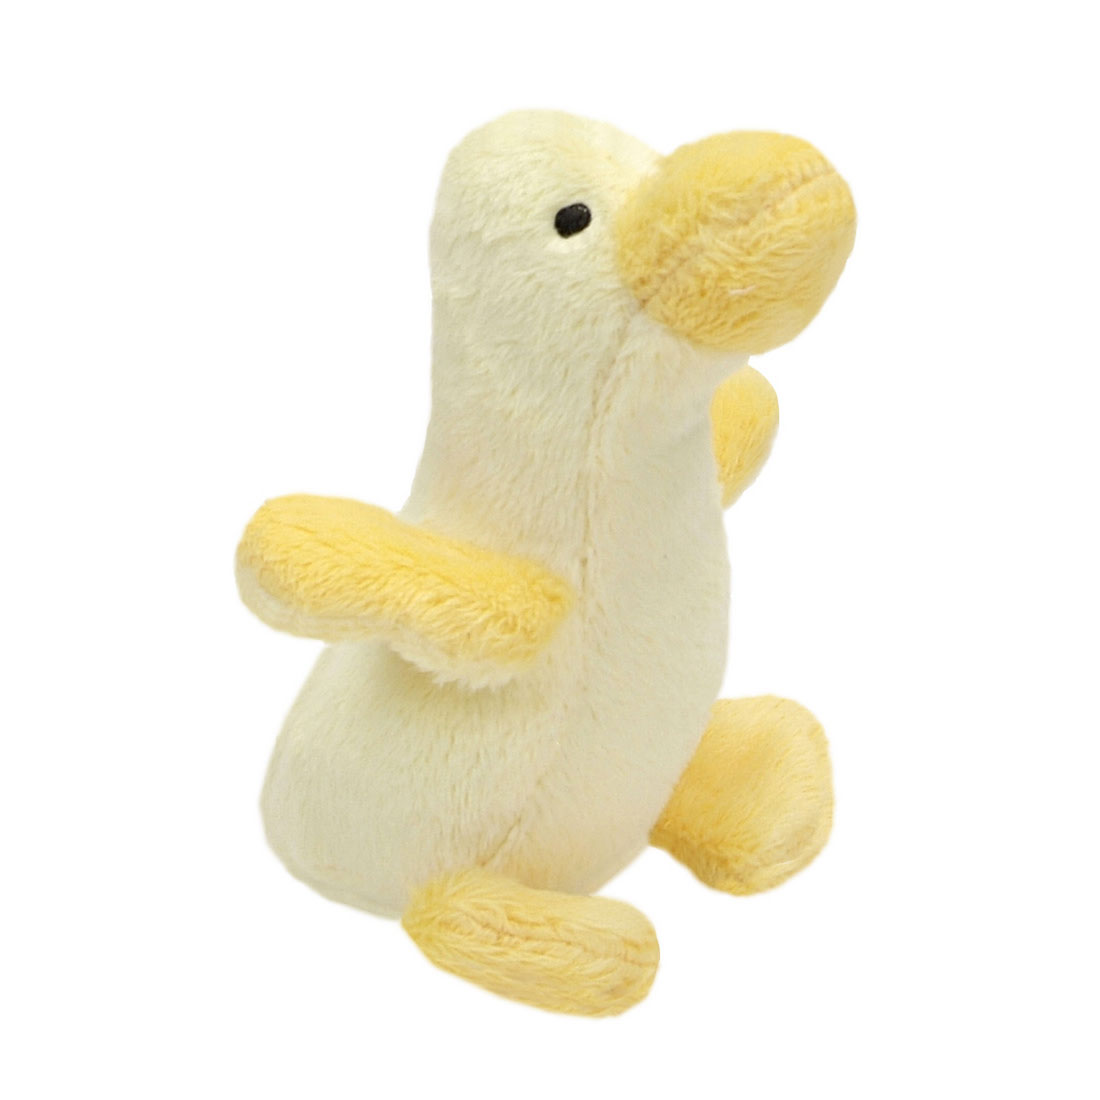 Coastal Pet Li'l Pals Duck Plush Dog Toy, 4.5-in